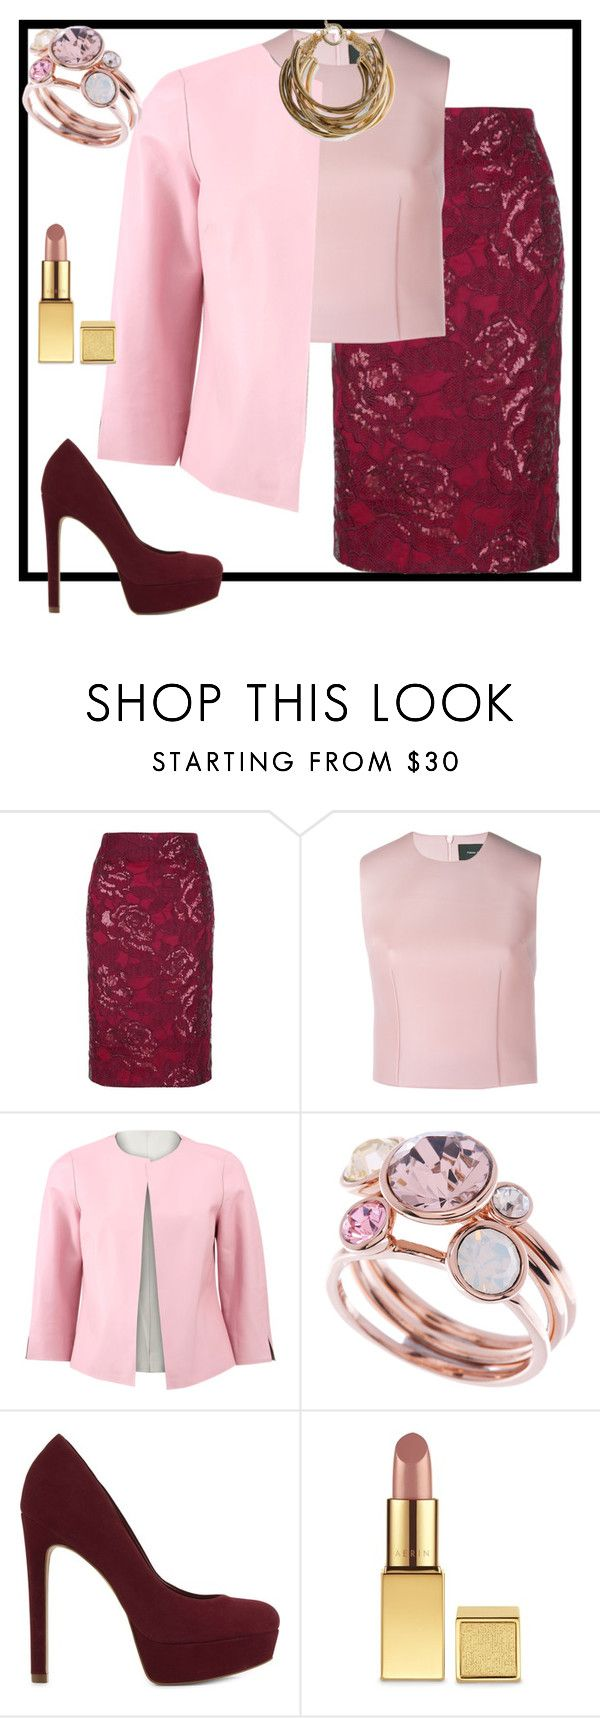 """Без названия #296"" by natali26-72 ❤ liked on Polyvore featuring Fenn Wright Manson, Simone Rocha, ESCADA, Ted Baker, ALDO, AERIN and Rosantica"